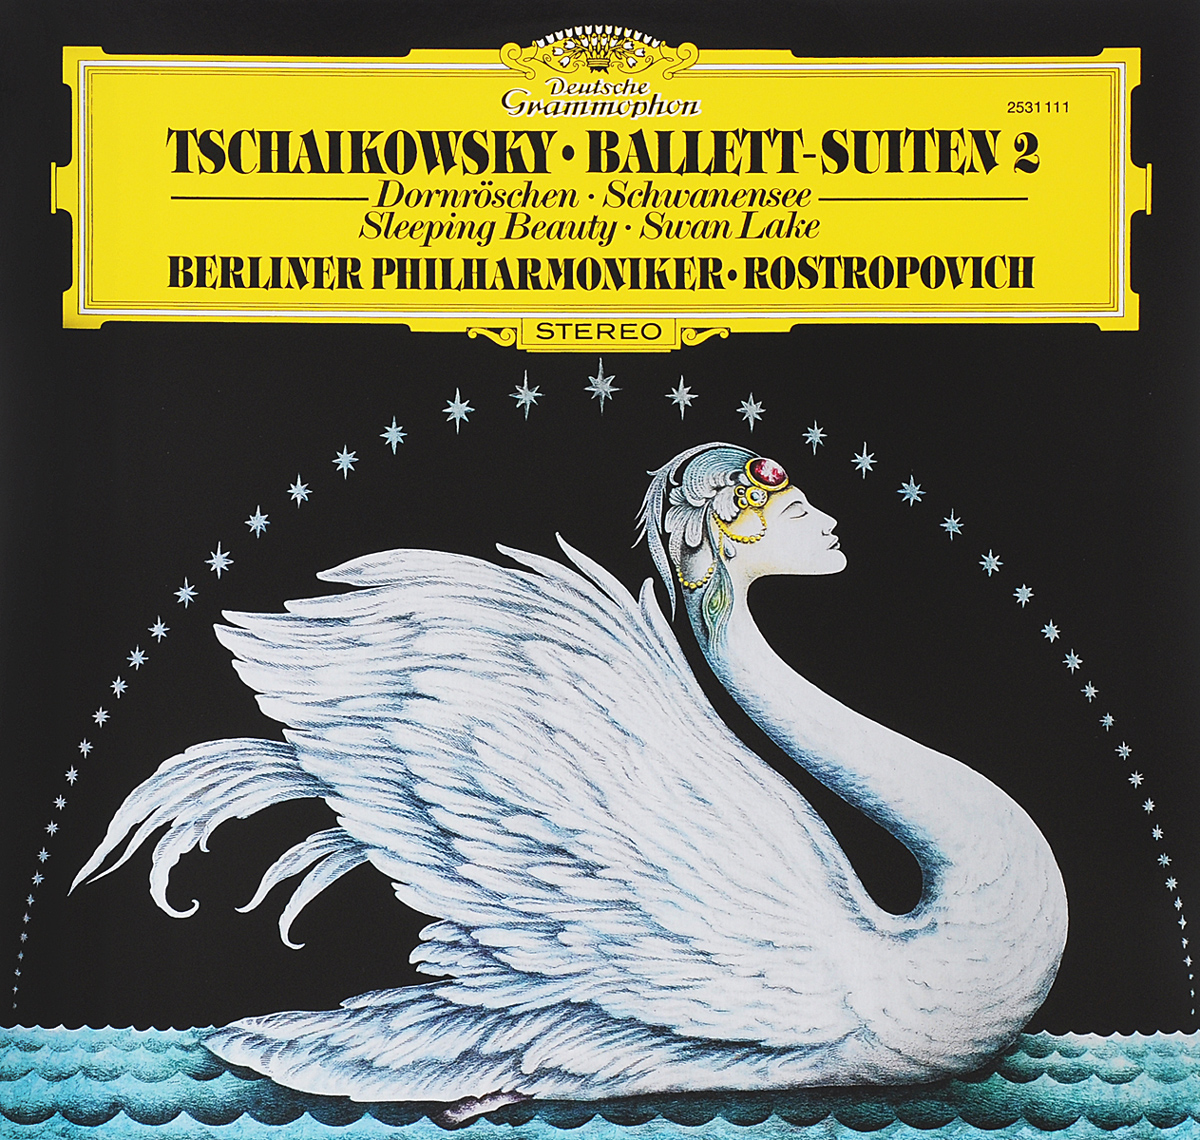 Мстислав Ростропович,Леон Спирер,Эберхард Финк,Berliner Philharmoniker Rostropovich. Tchaikowsky. Ballet-Suiten II (LP) original new innolux 5 6 inch at056tn53 v 1 lcd screen with touch